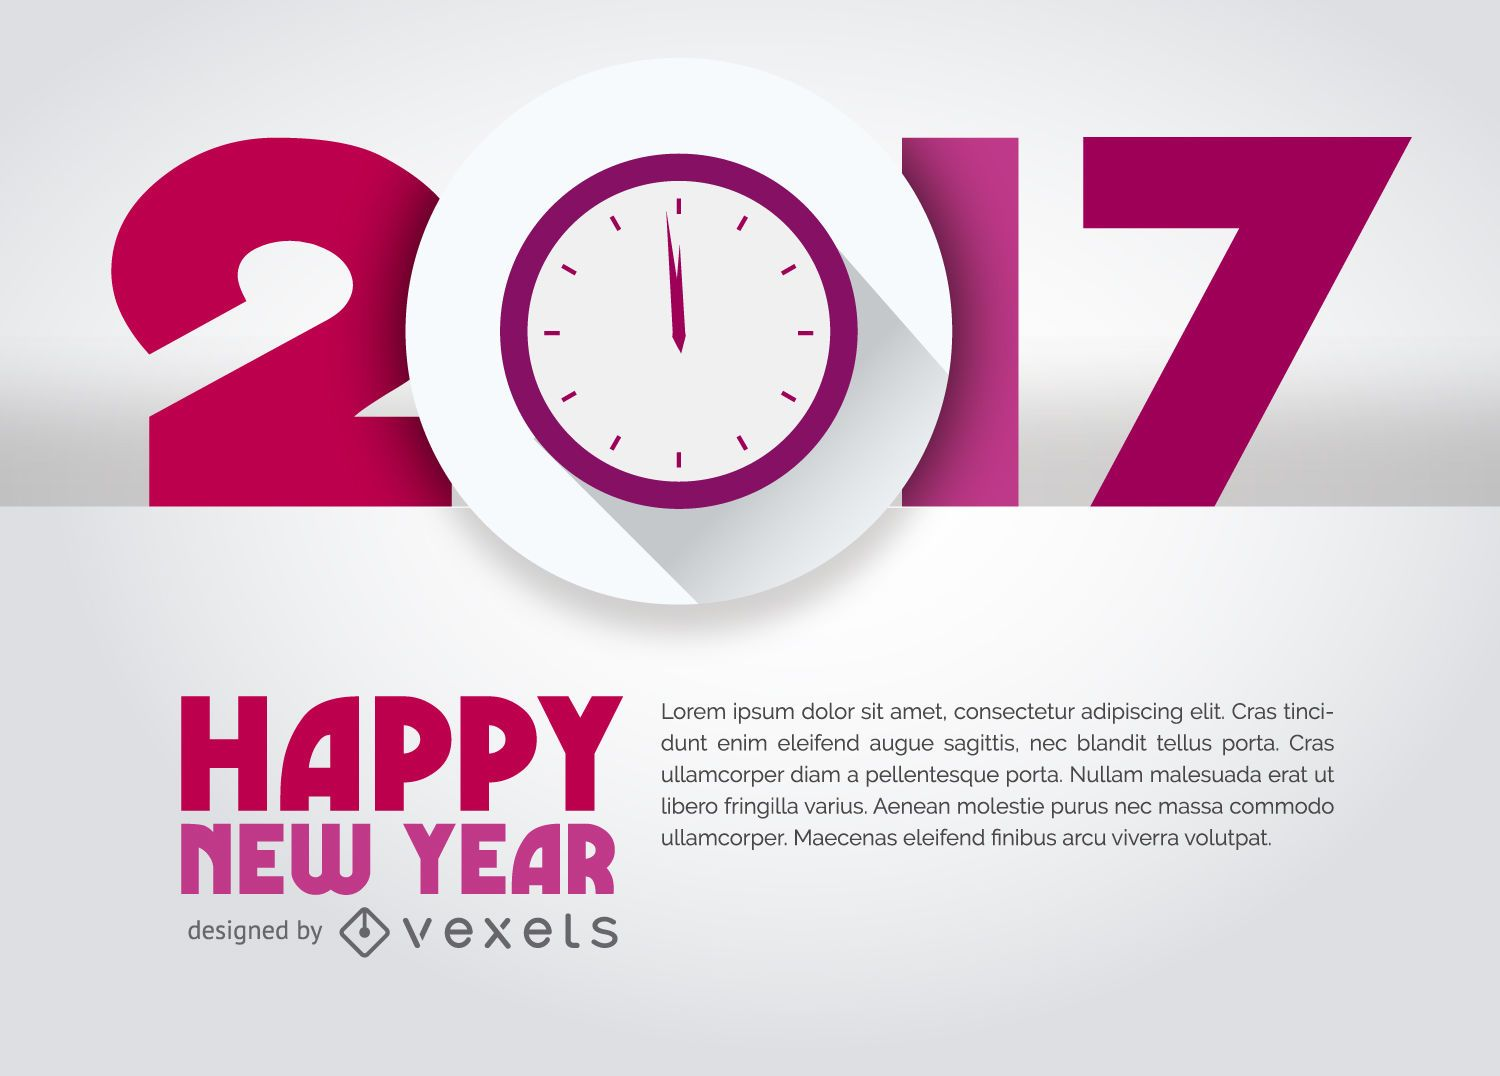 2017 sign with clock